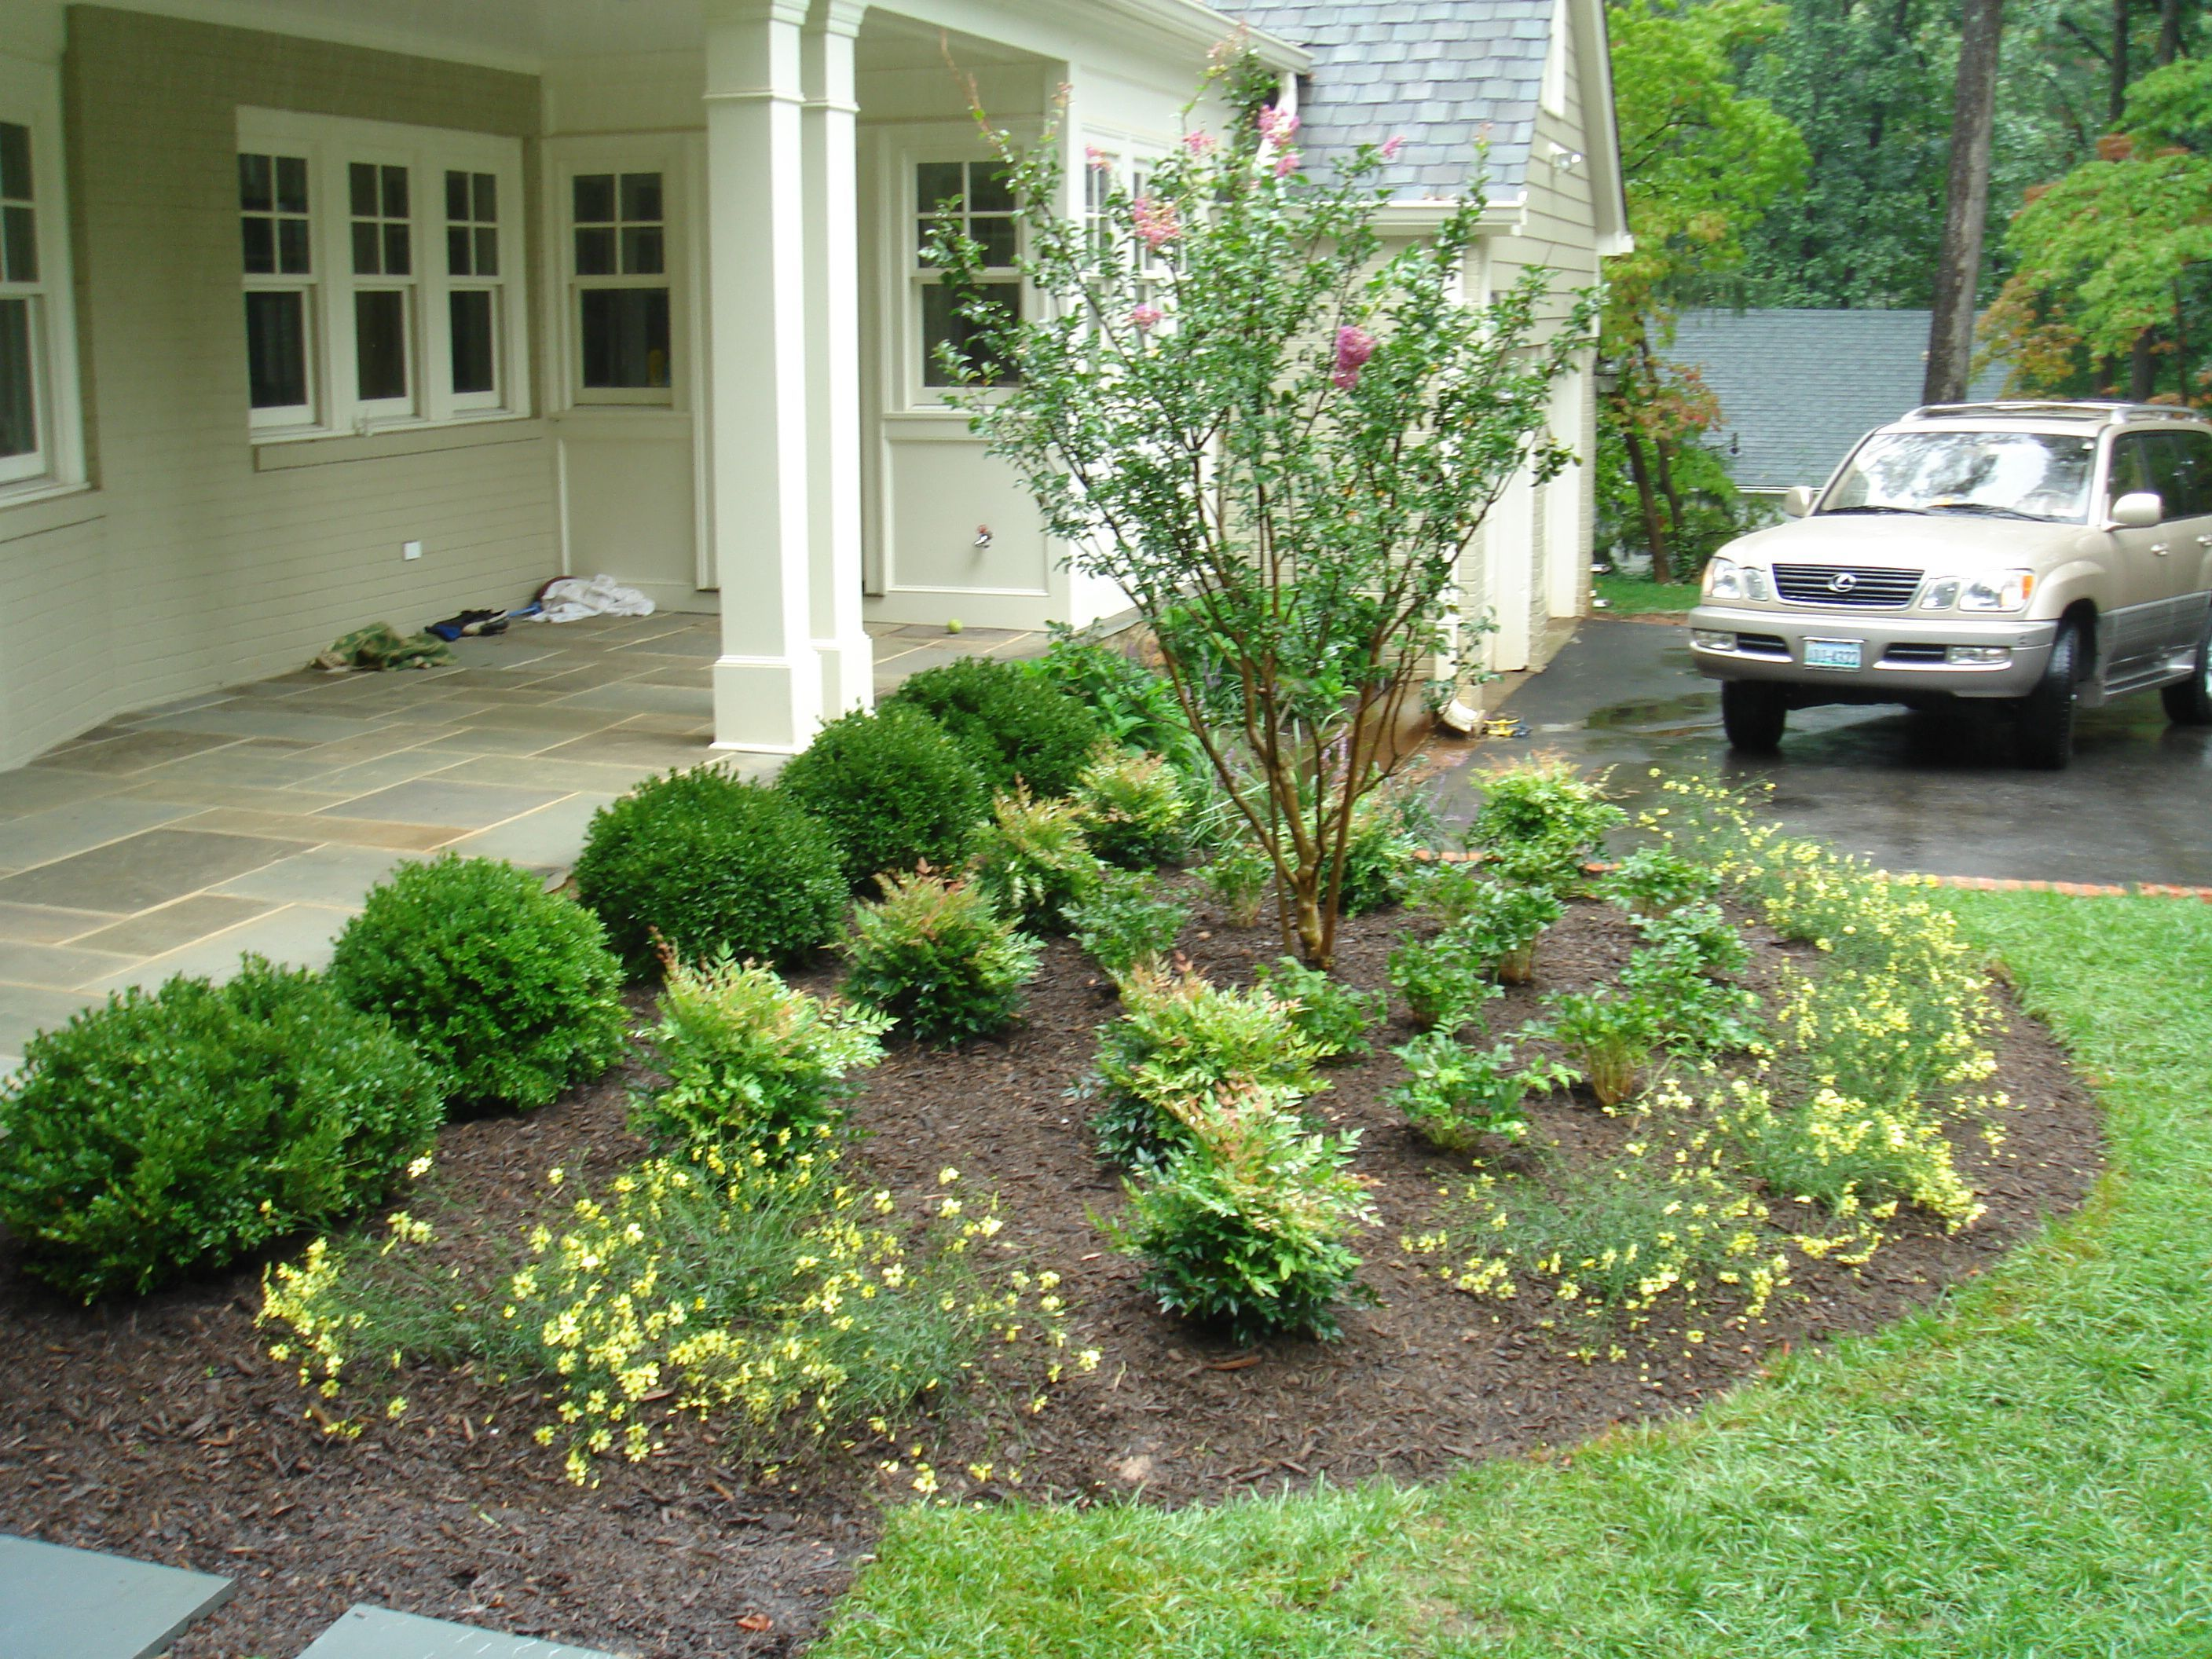 Landscaping Ideas For Front Yard On A Budget Part - 19: Front Yard Landscaping Ideas On A Budget